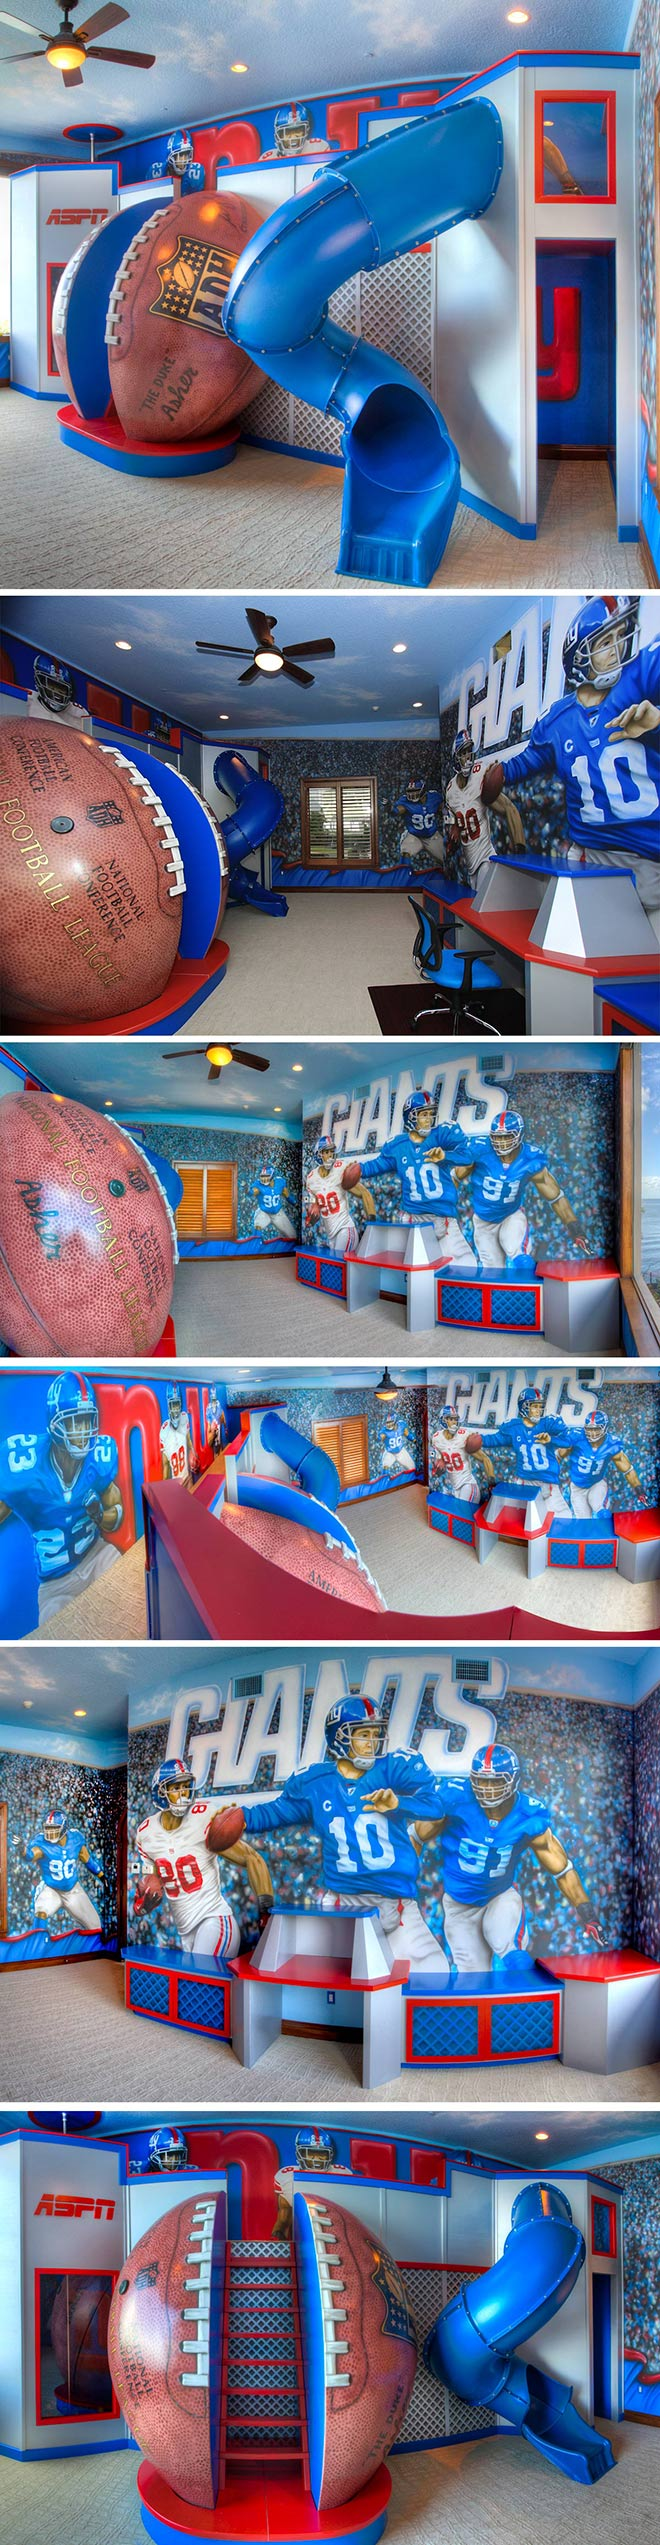 Football Playroom - Design par Jason Hulfish